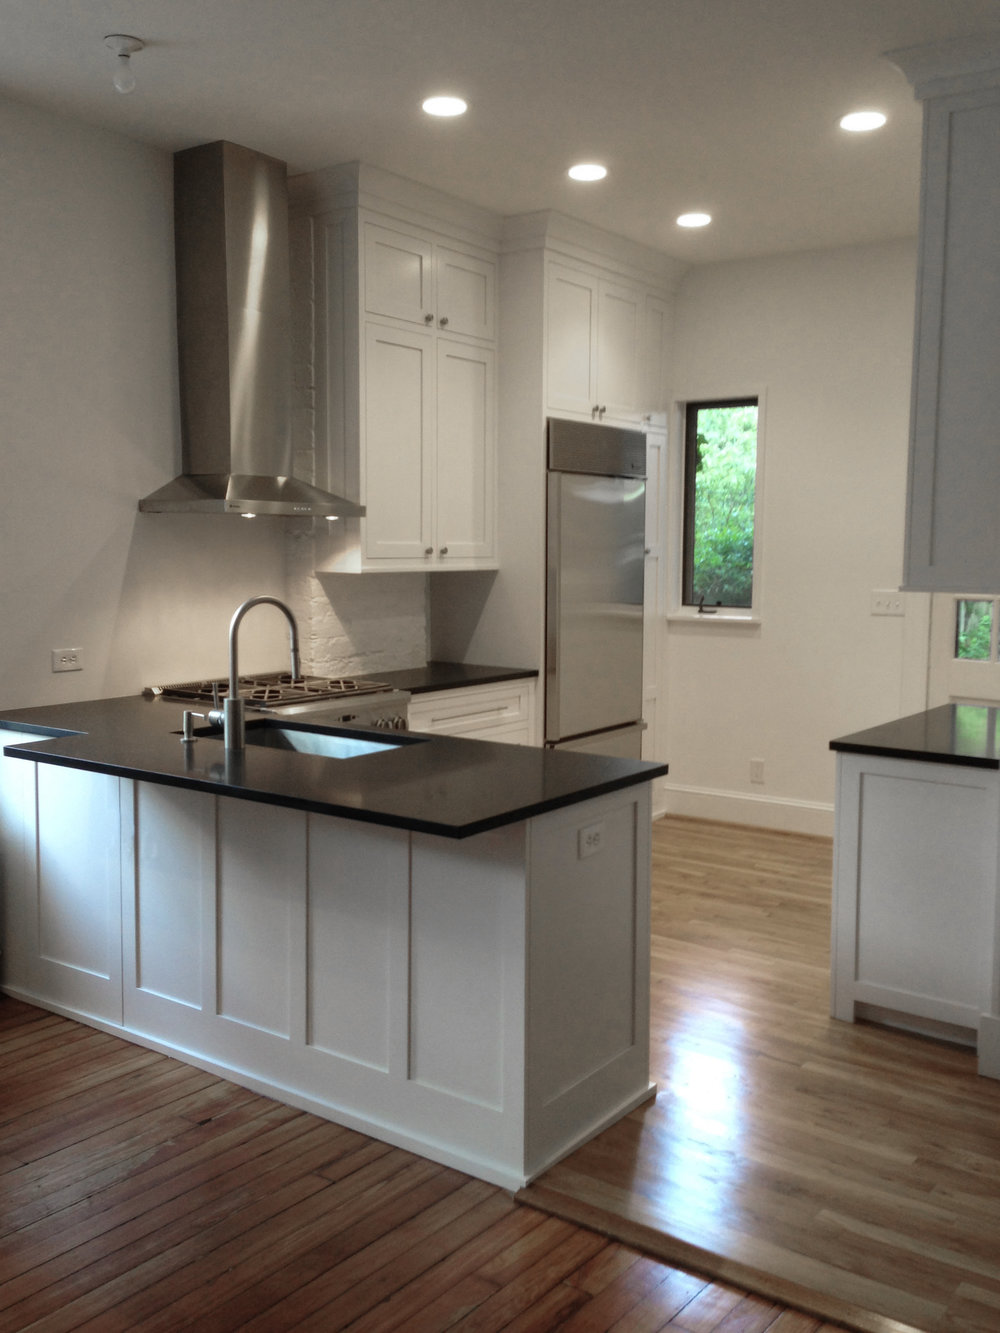 Headley_kitchen3.jpg